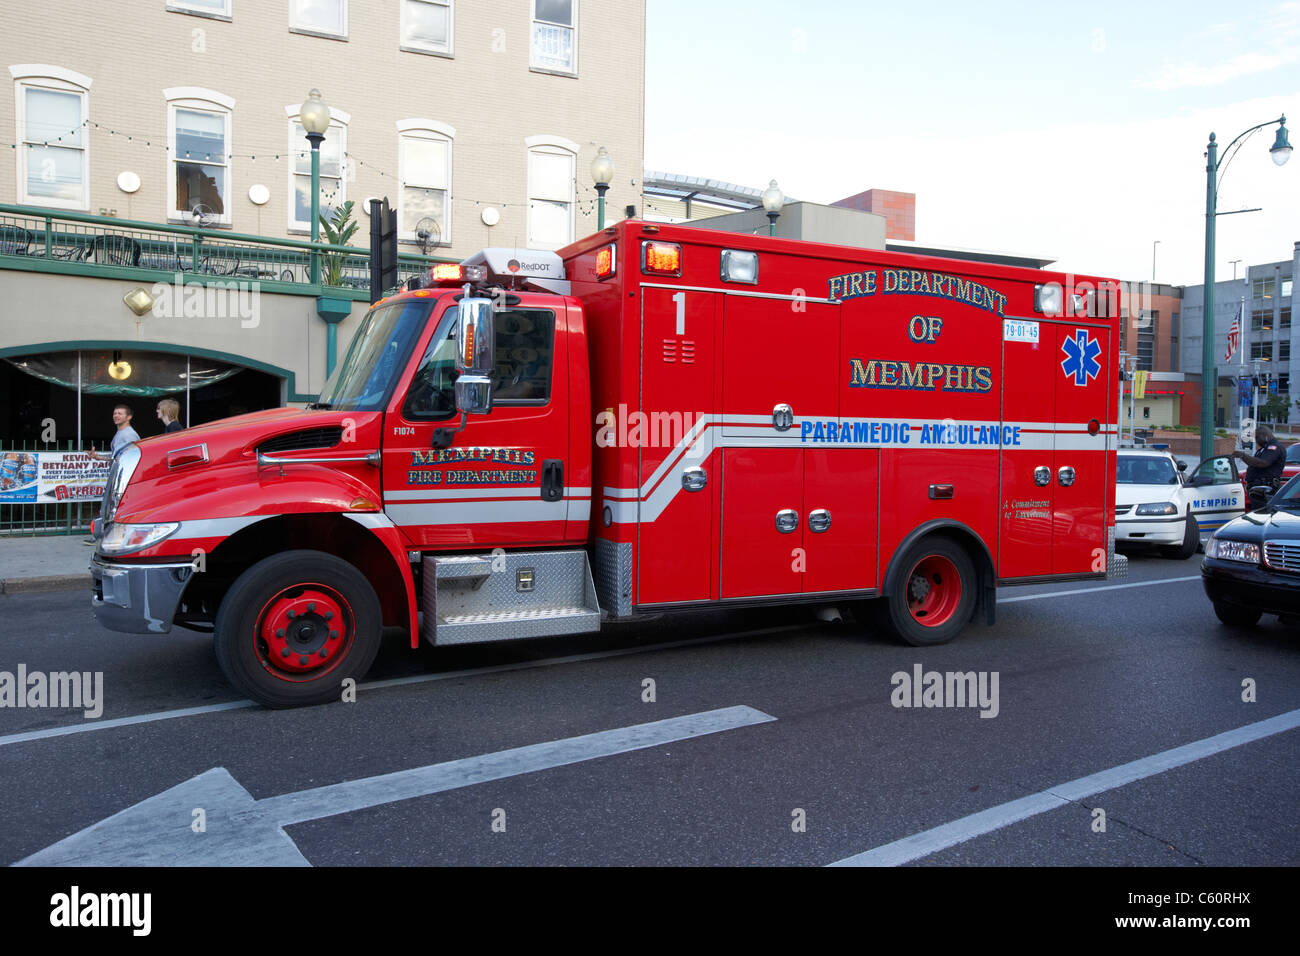 fire department of memphis paramedic ambulance tennessee united states america usa - Stock Image